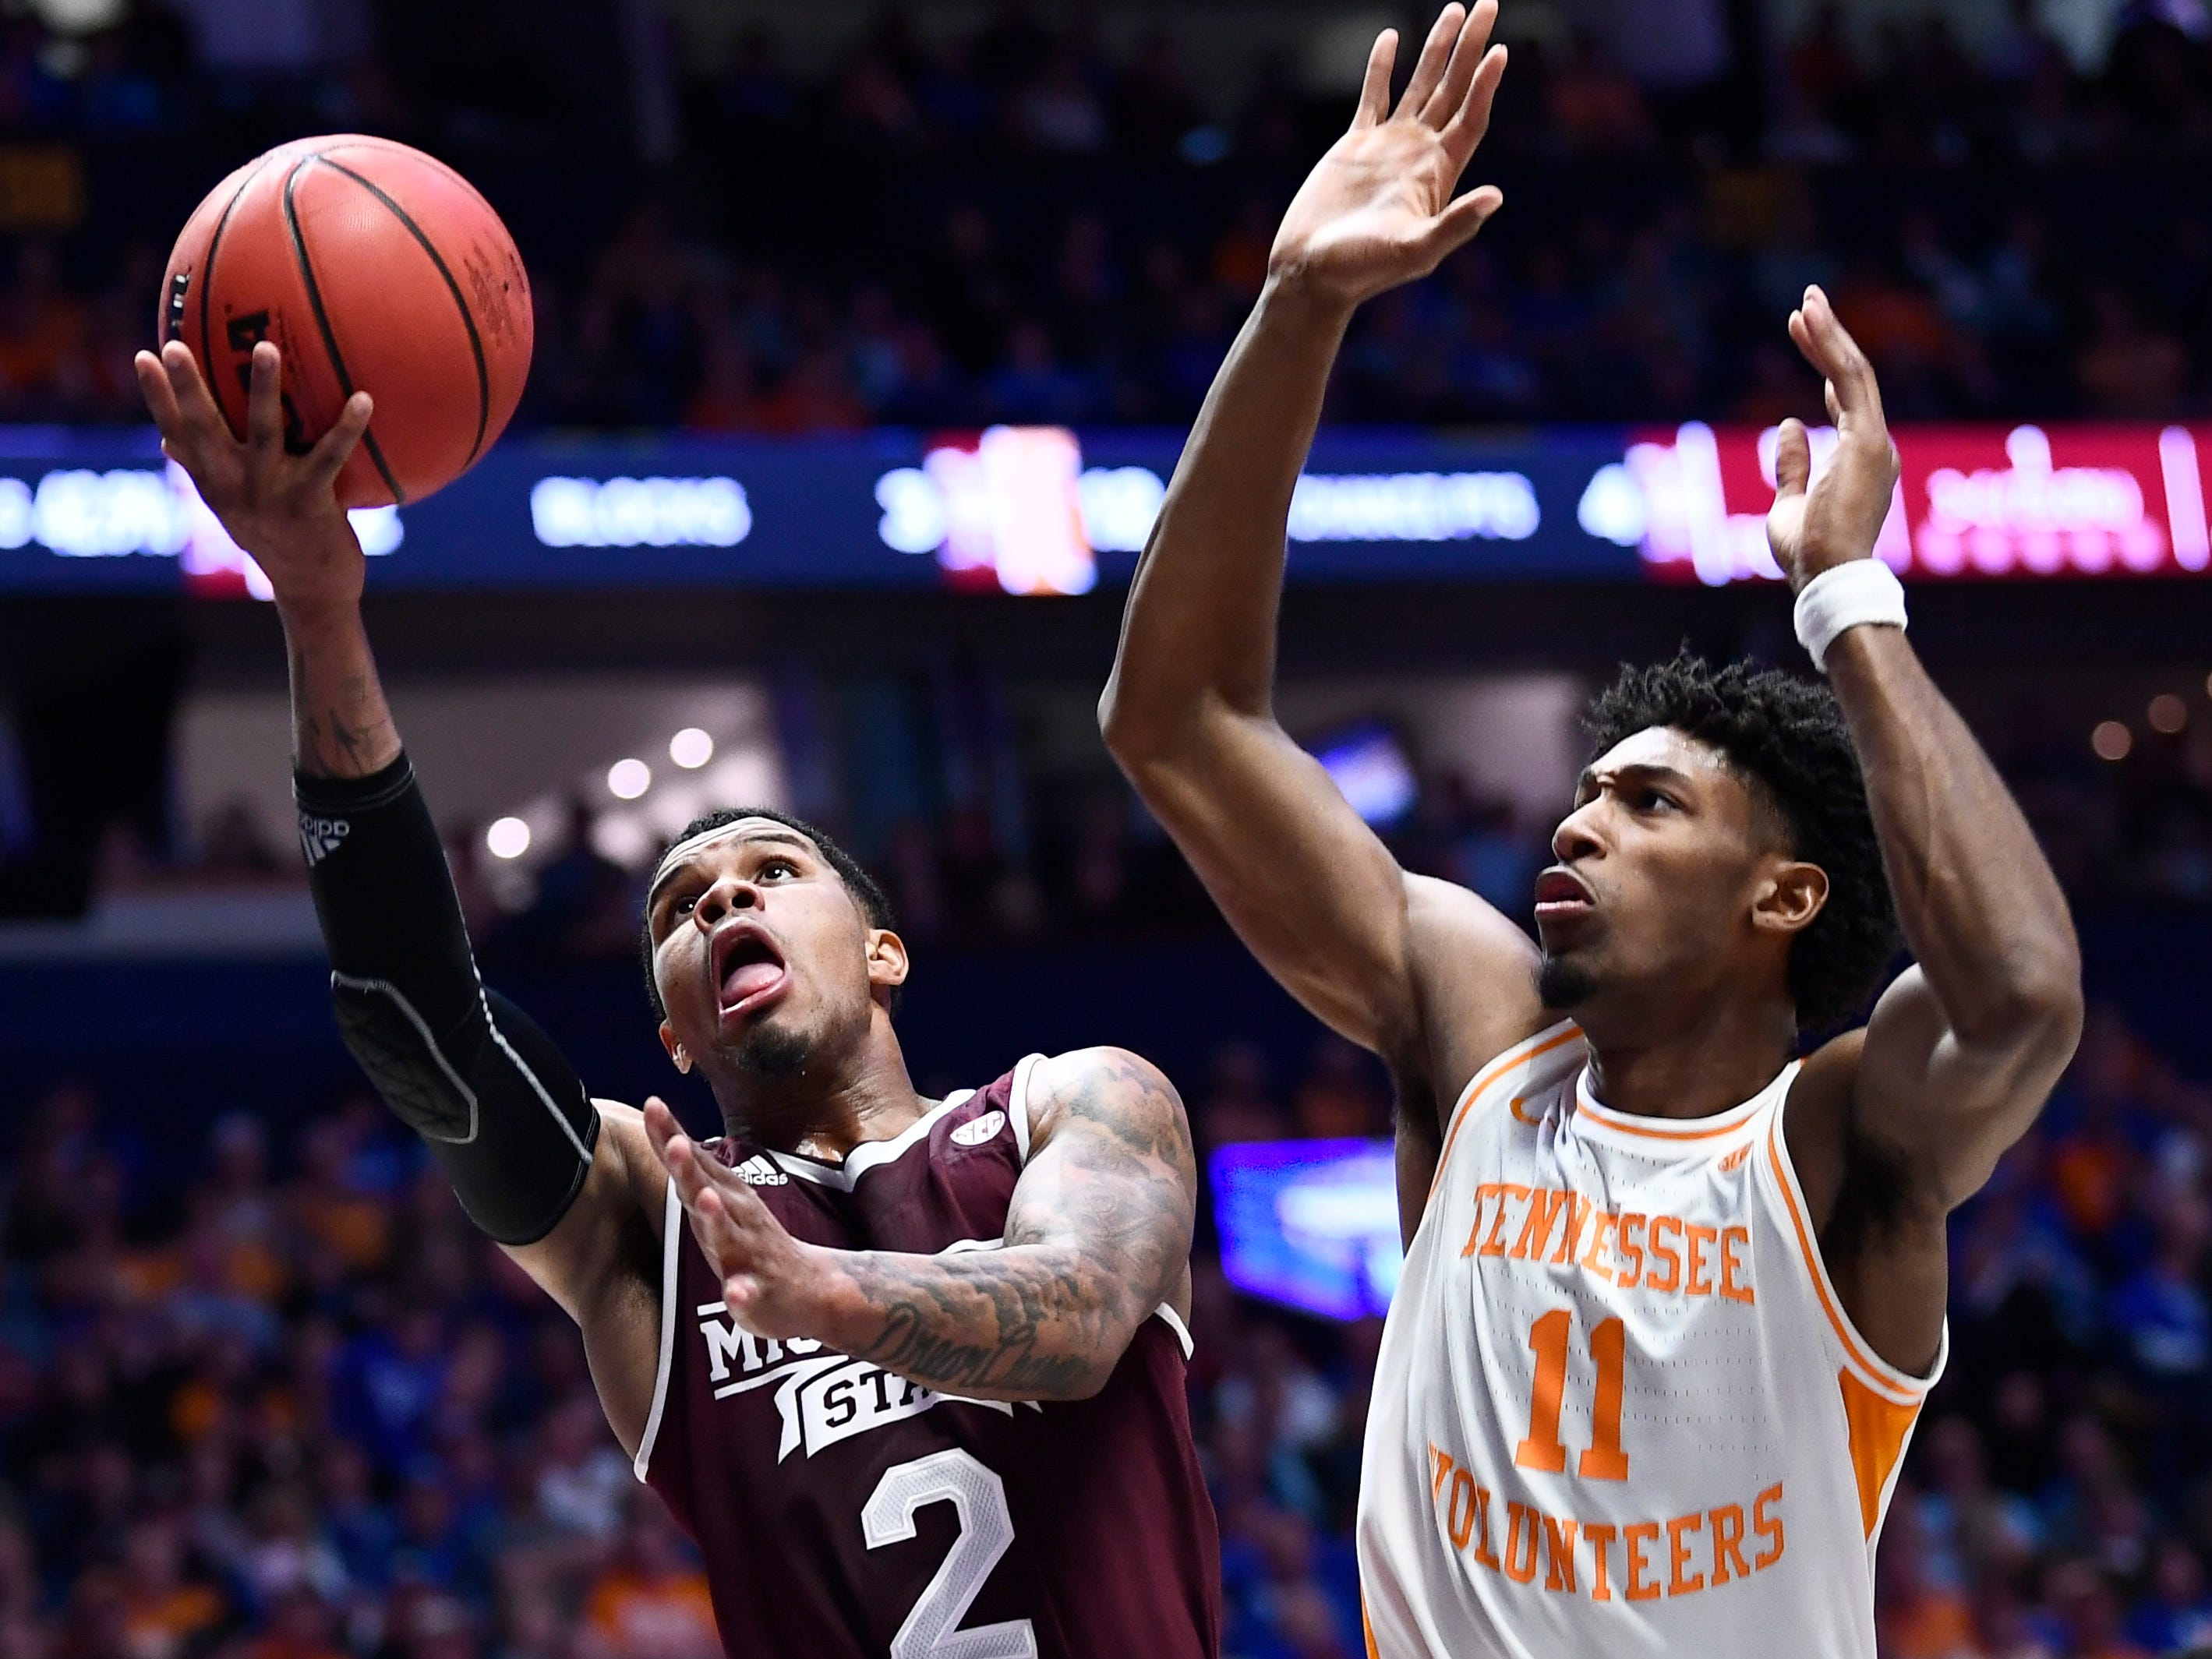 Mississippi State guard Lamar Peters (2) goes to the basket defended by Tennessee forward Kyle Alexander (11) during the first half of the SEC Men's Basketball Tournament game at Bridgestone Arena in Nashville, Tenn., Friday, March 15, 2019.